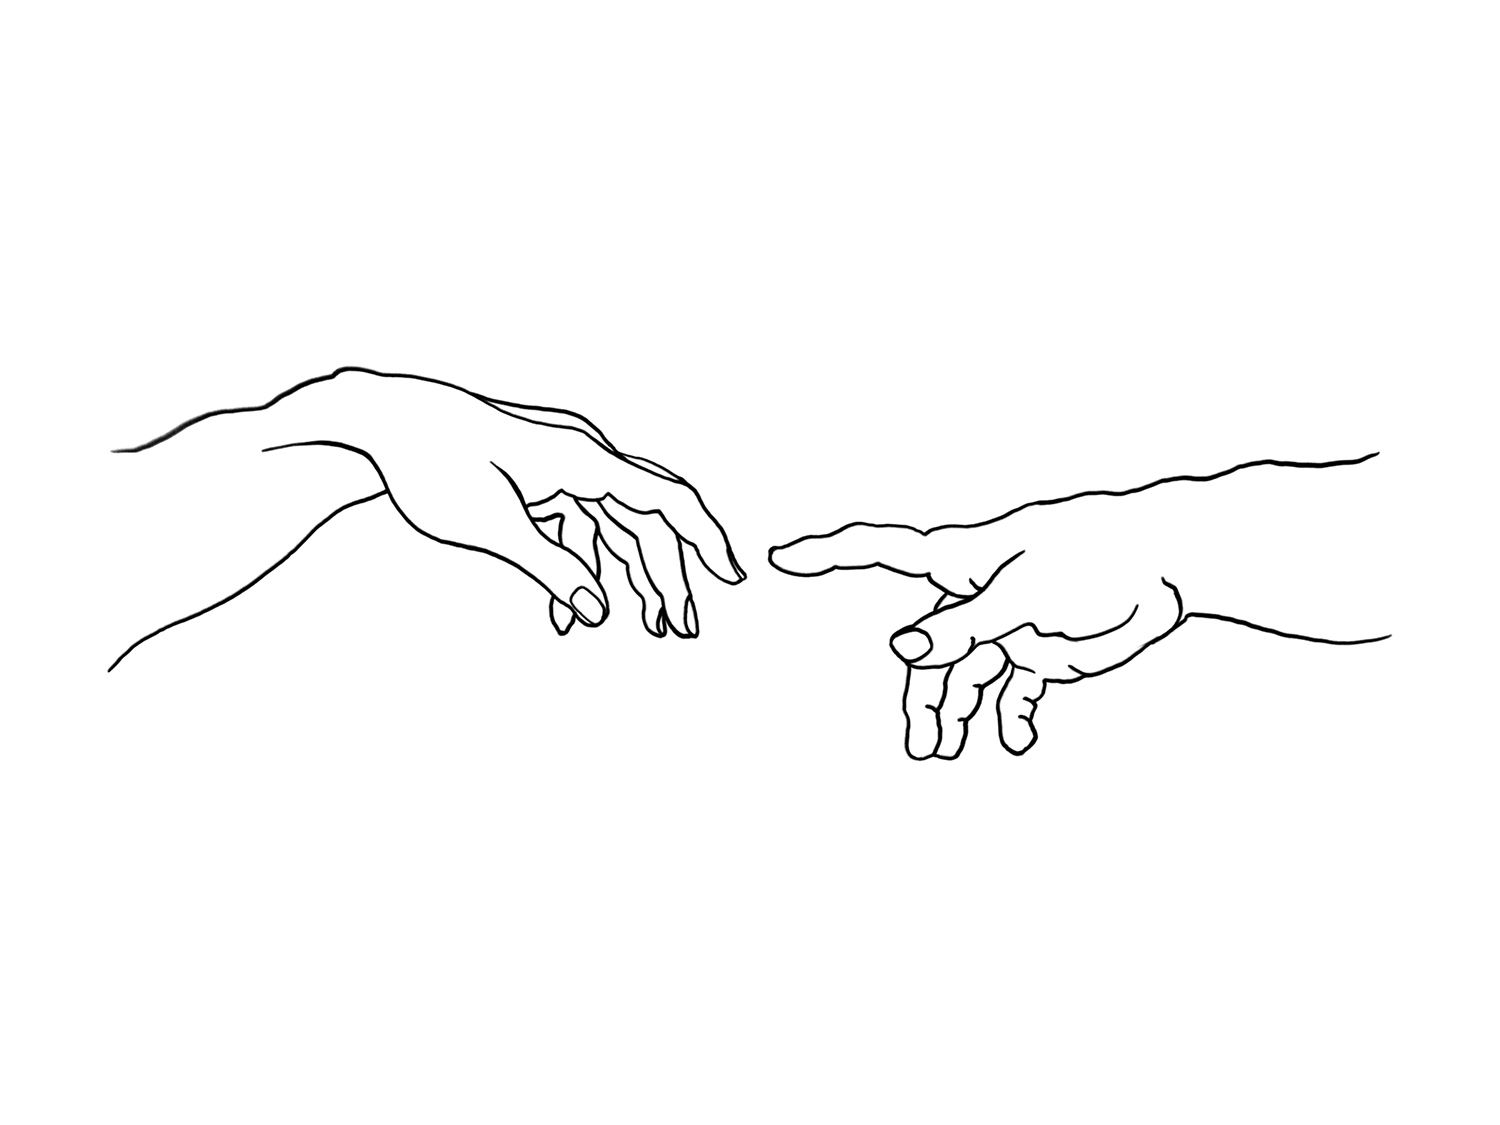 The Creation of Adam Print, Michelangelo Printable, Adam Illustration, One Line Hands Wall Art